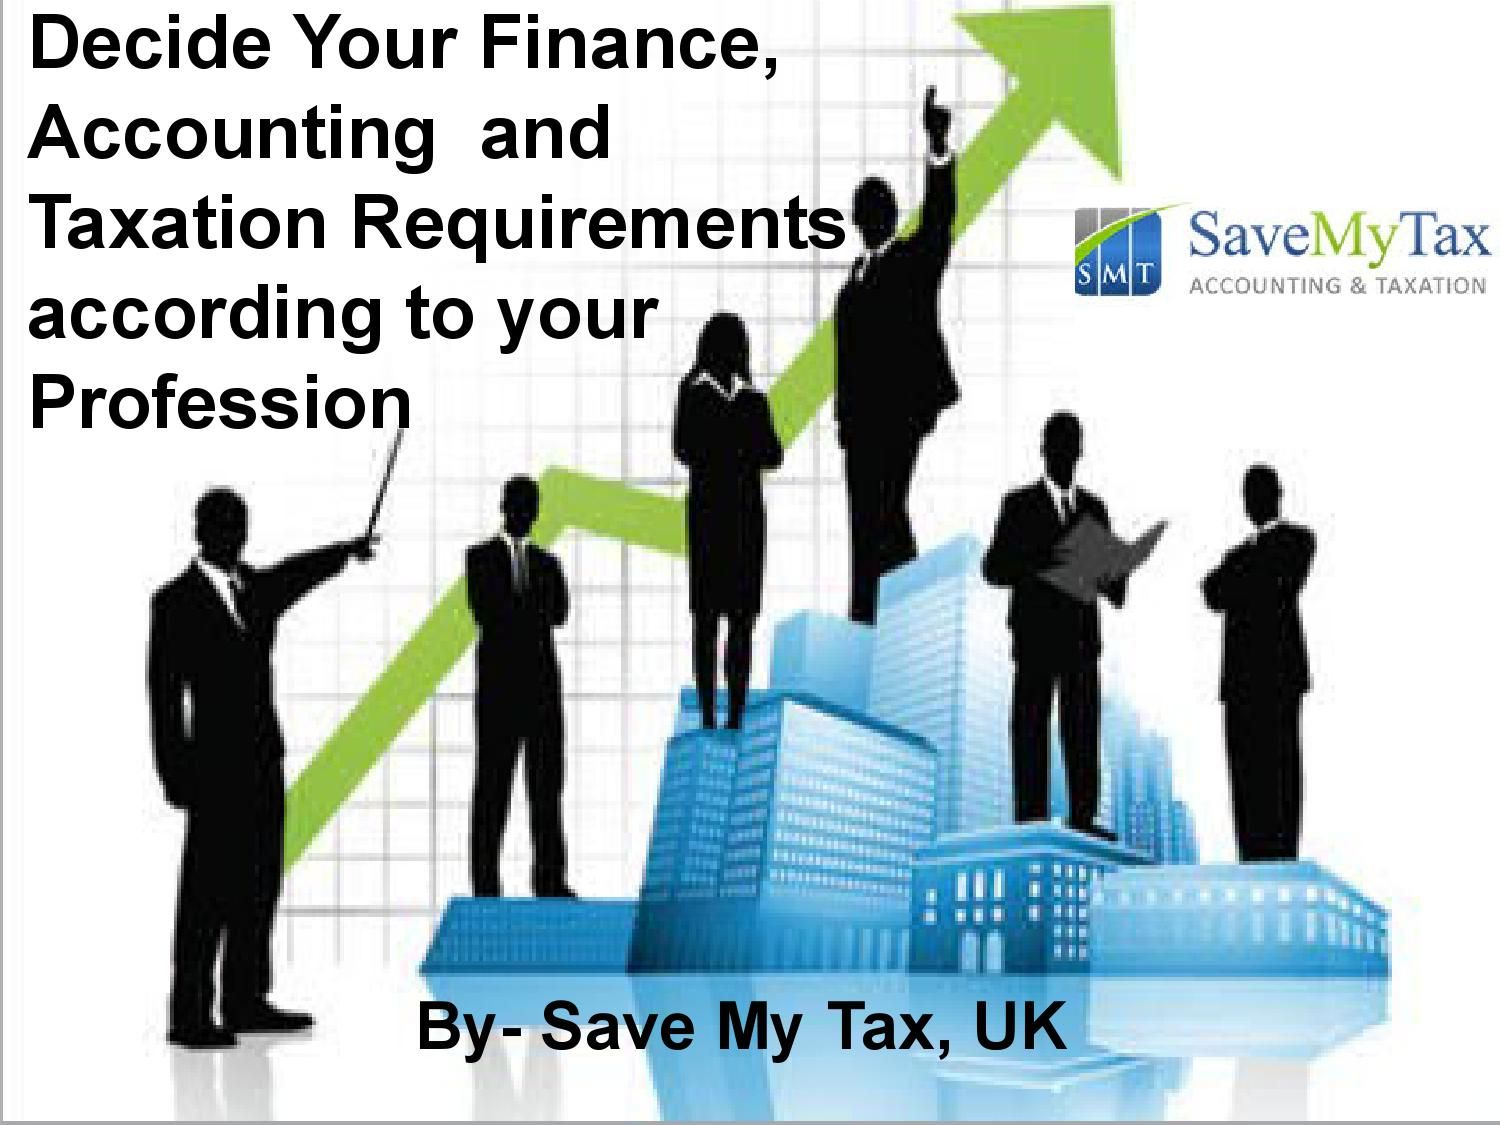 Decide your finance, accounting and taxation requirements